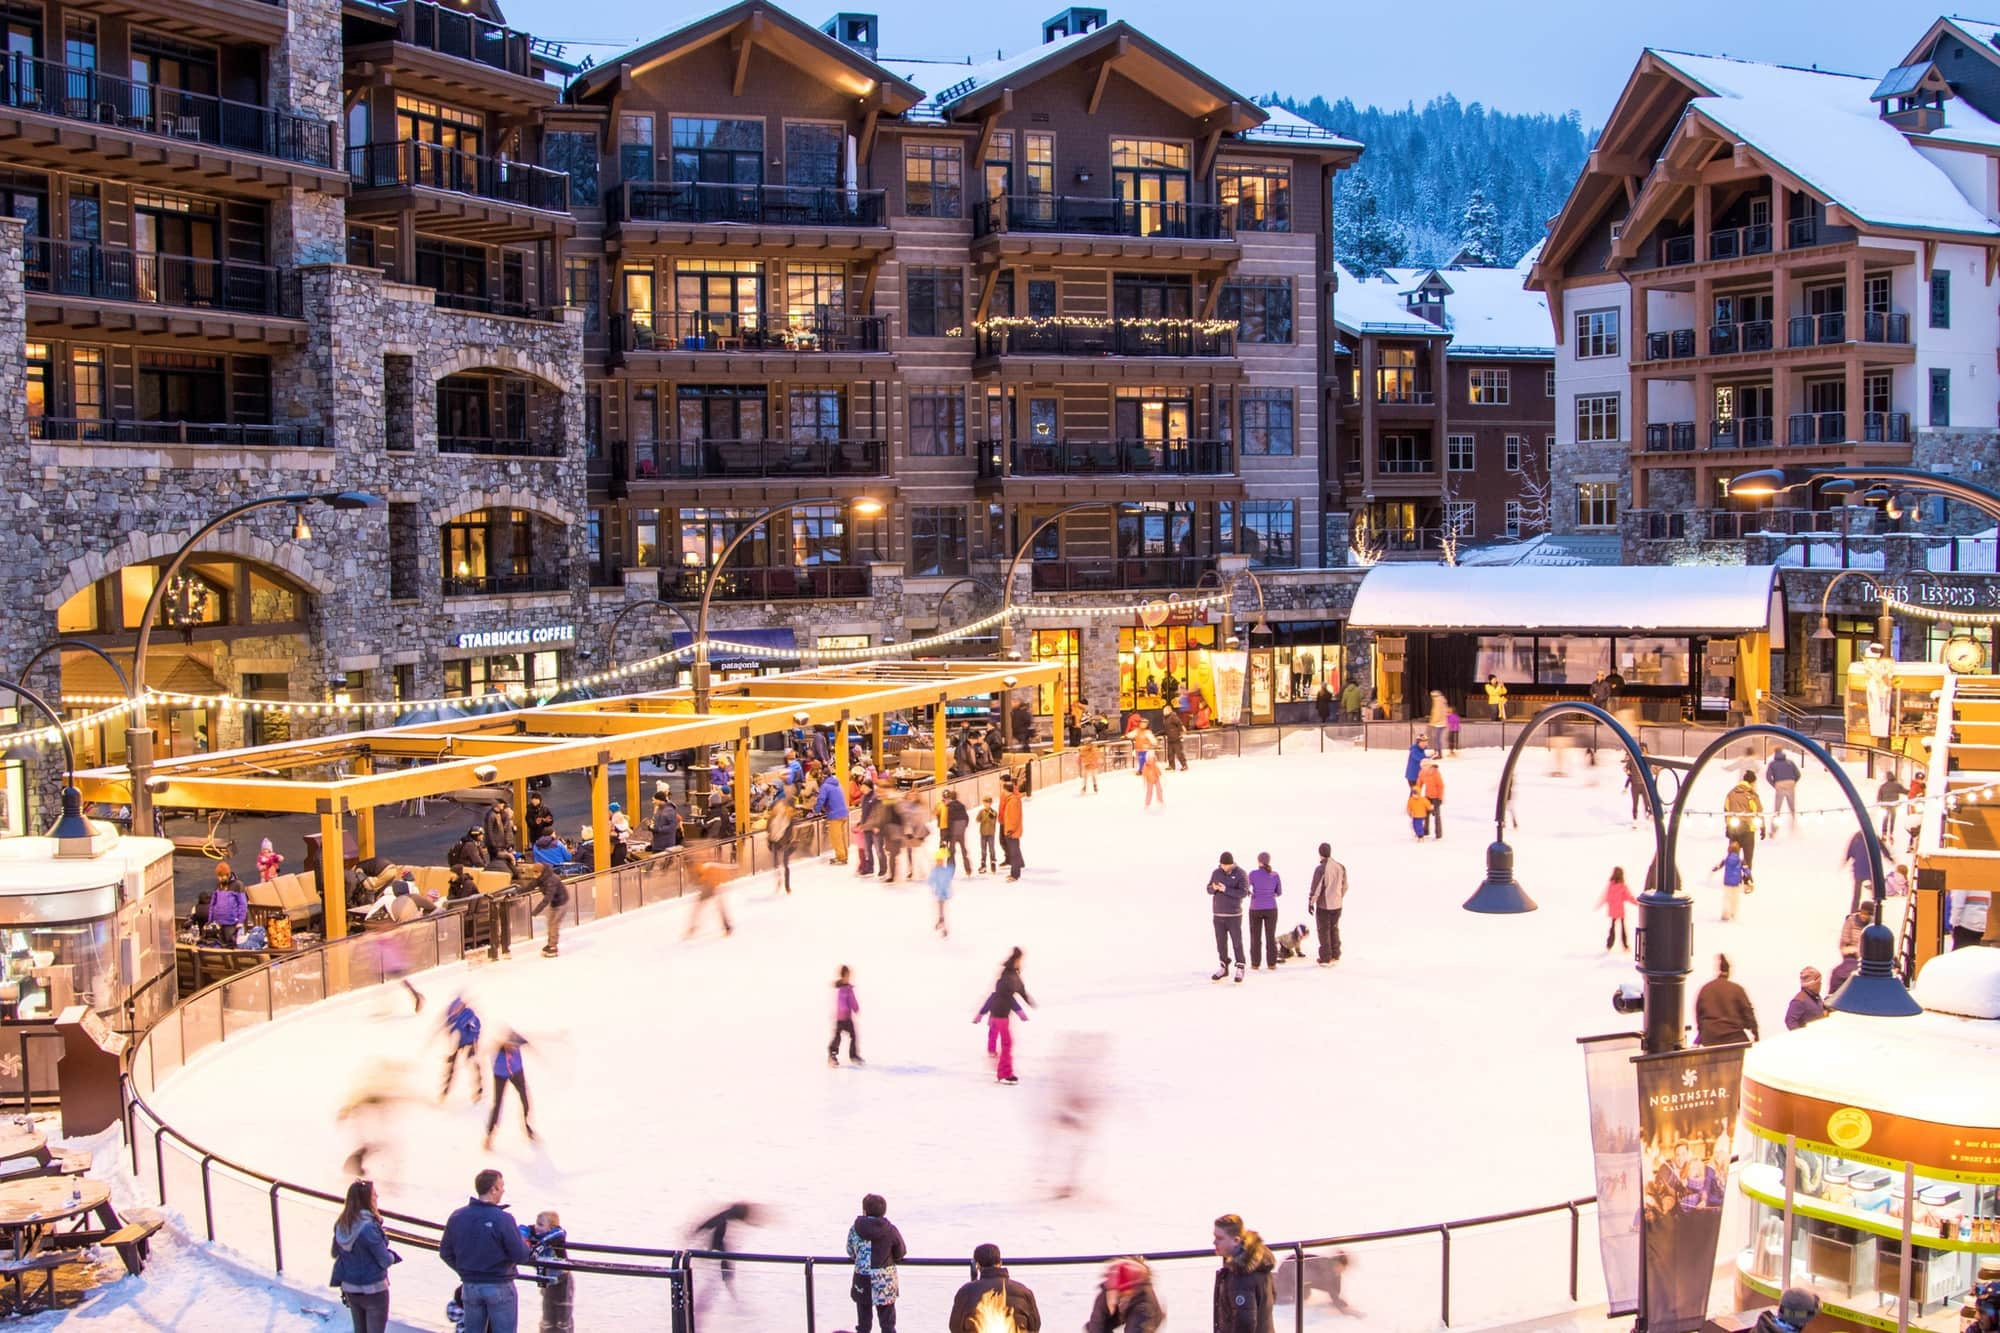 The beautiful Village at Northstar with kids